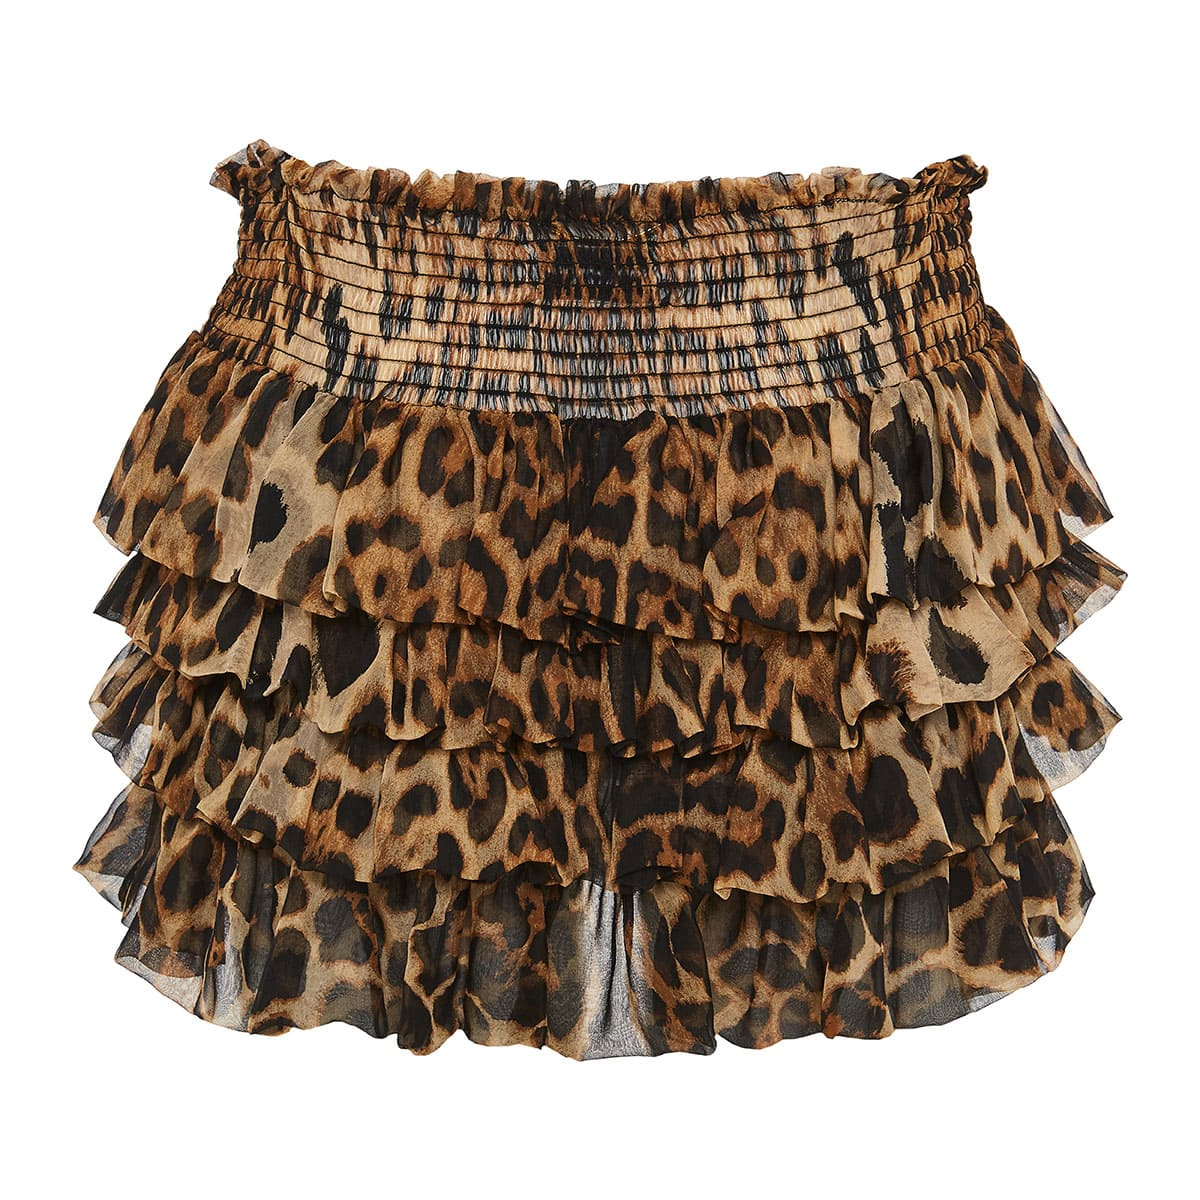 Leopard ruffled mini tiered skirt